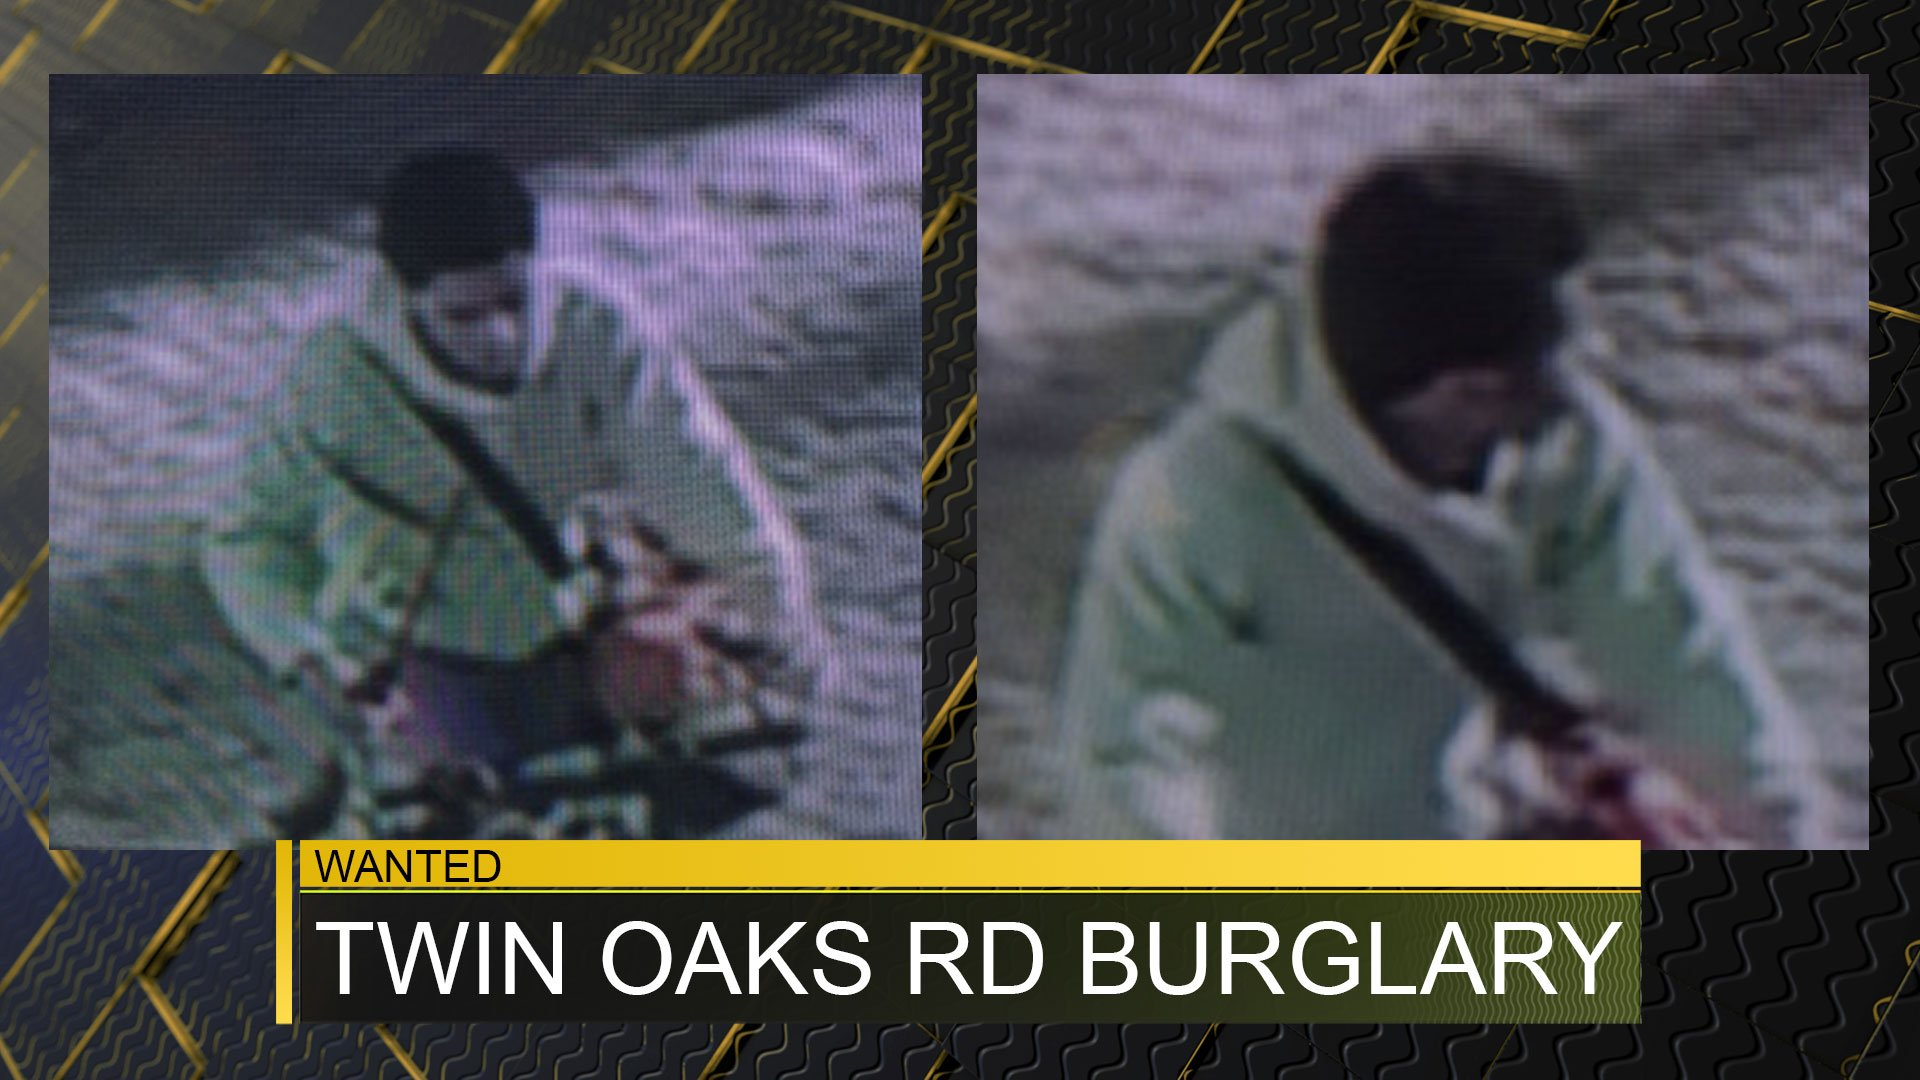 Suspect wanted in Twin Oaks Rd. burglary (source: McDuffie County Sheriff's Office)